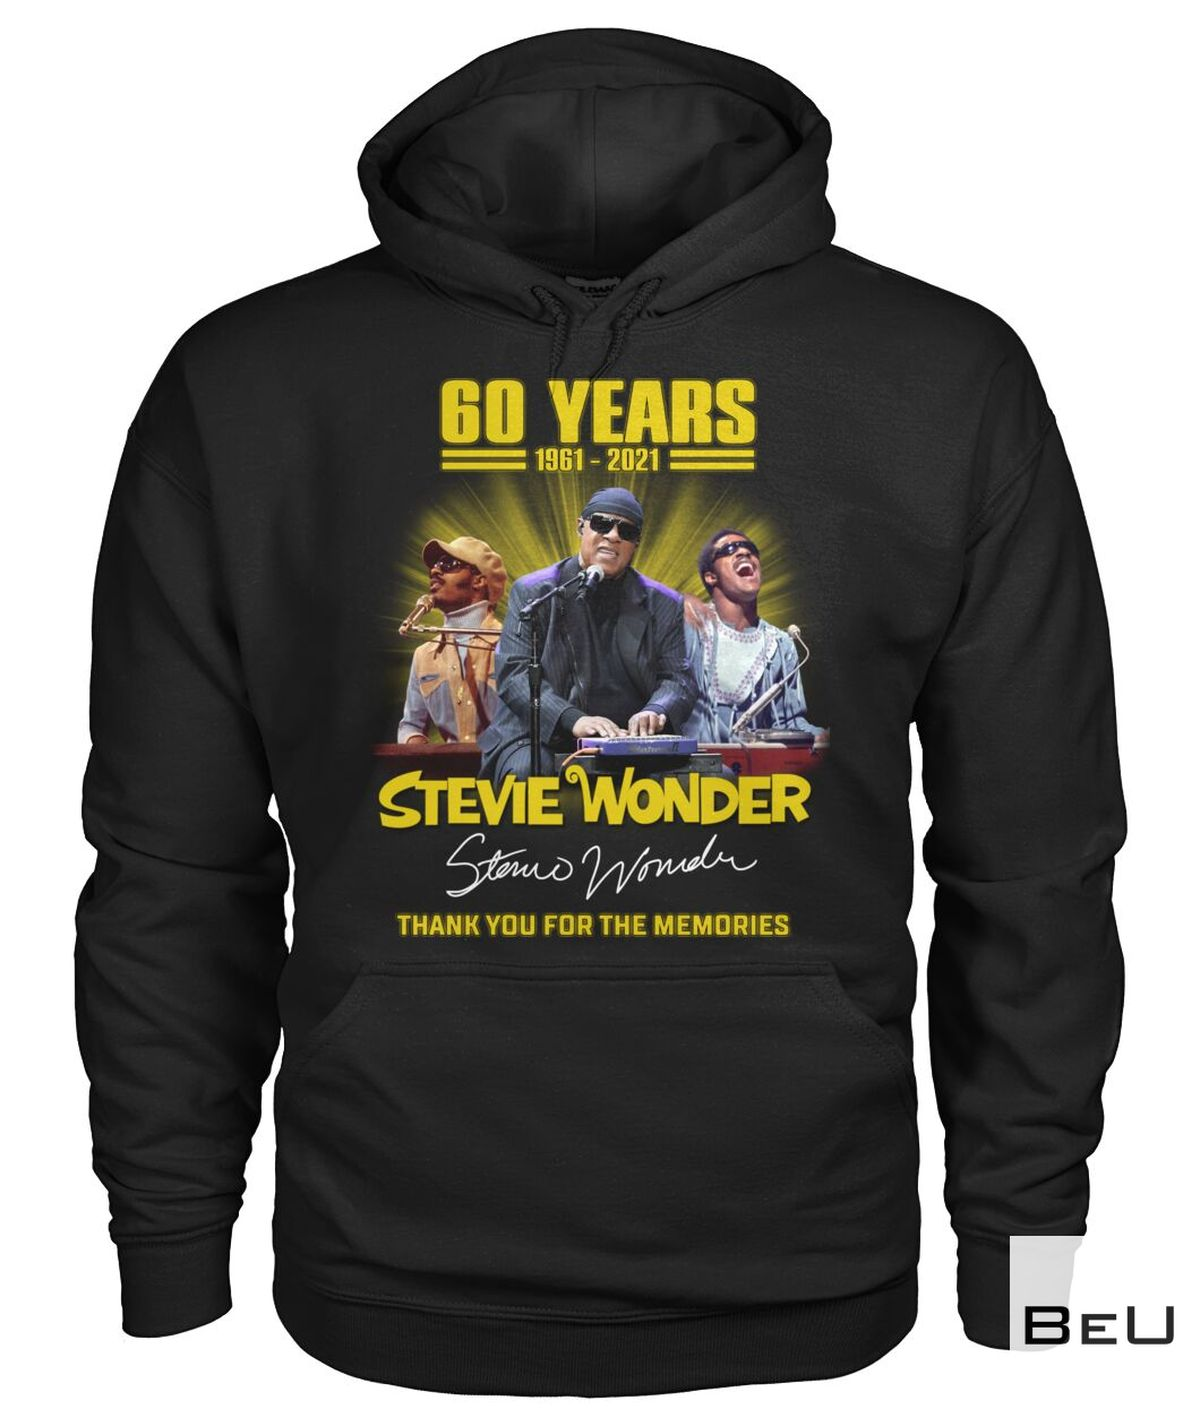 Drop Shipping 60 Years Stevie Wonder Thank You For The Memories Shirt, hoodie, tank top